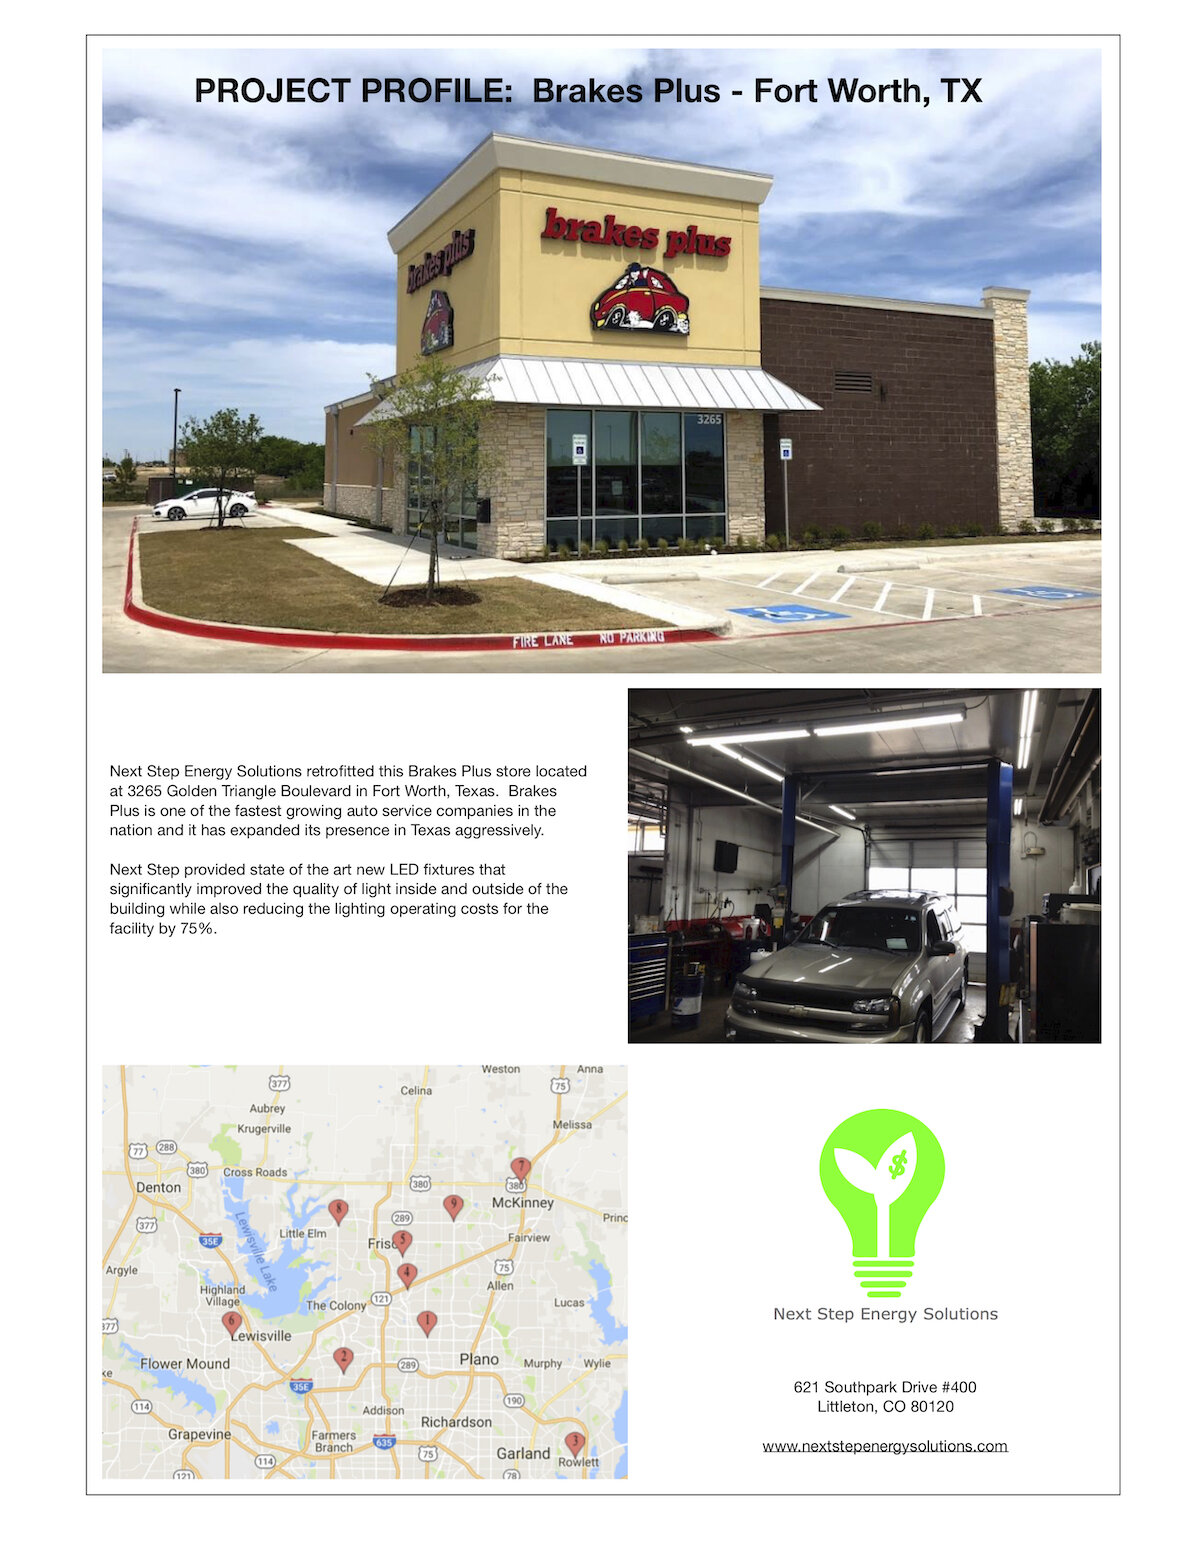 Project Profile Brakes Plus Fort Worth.jpg